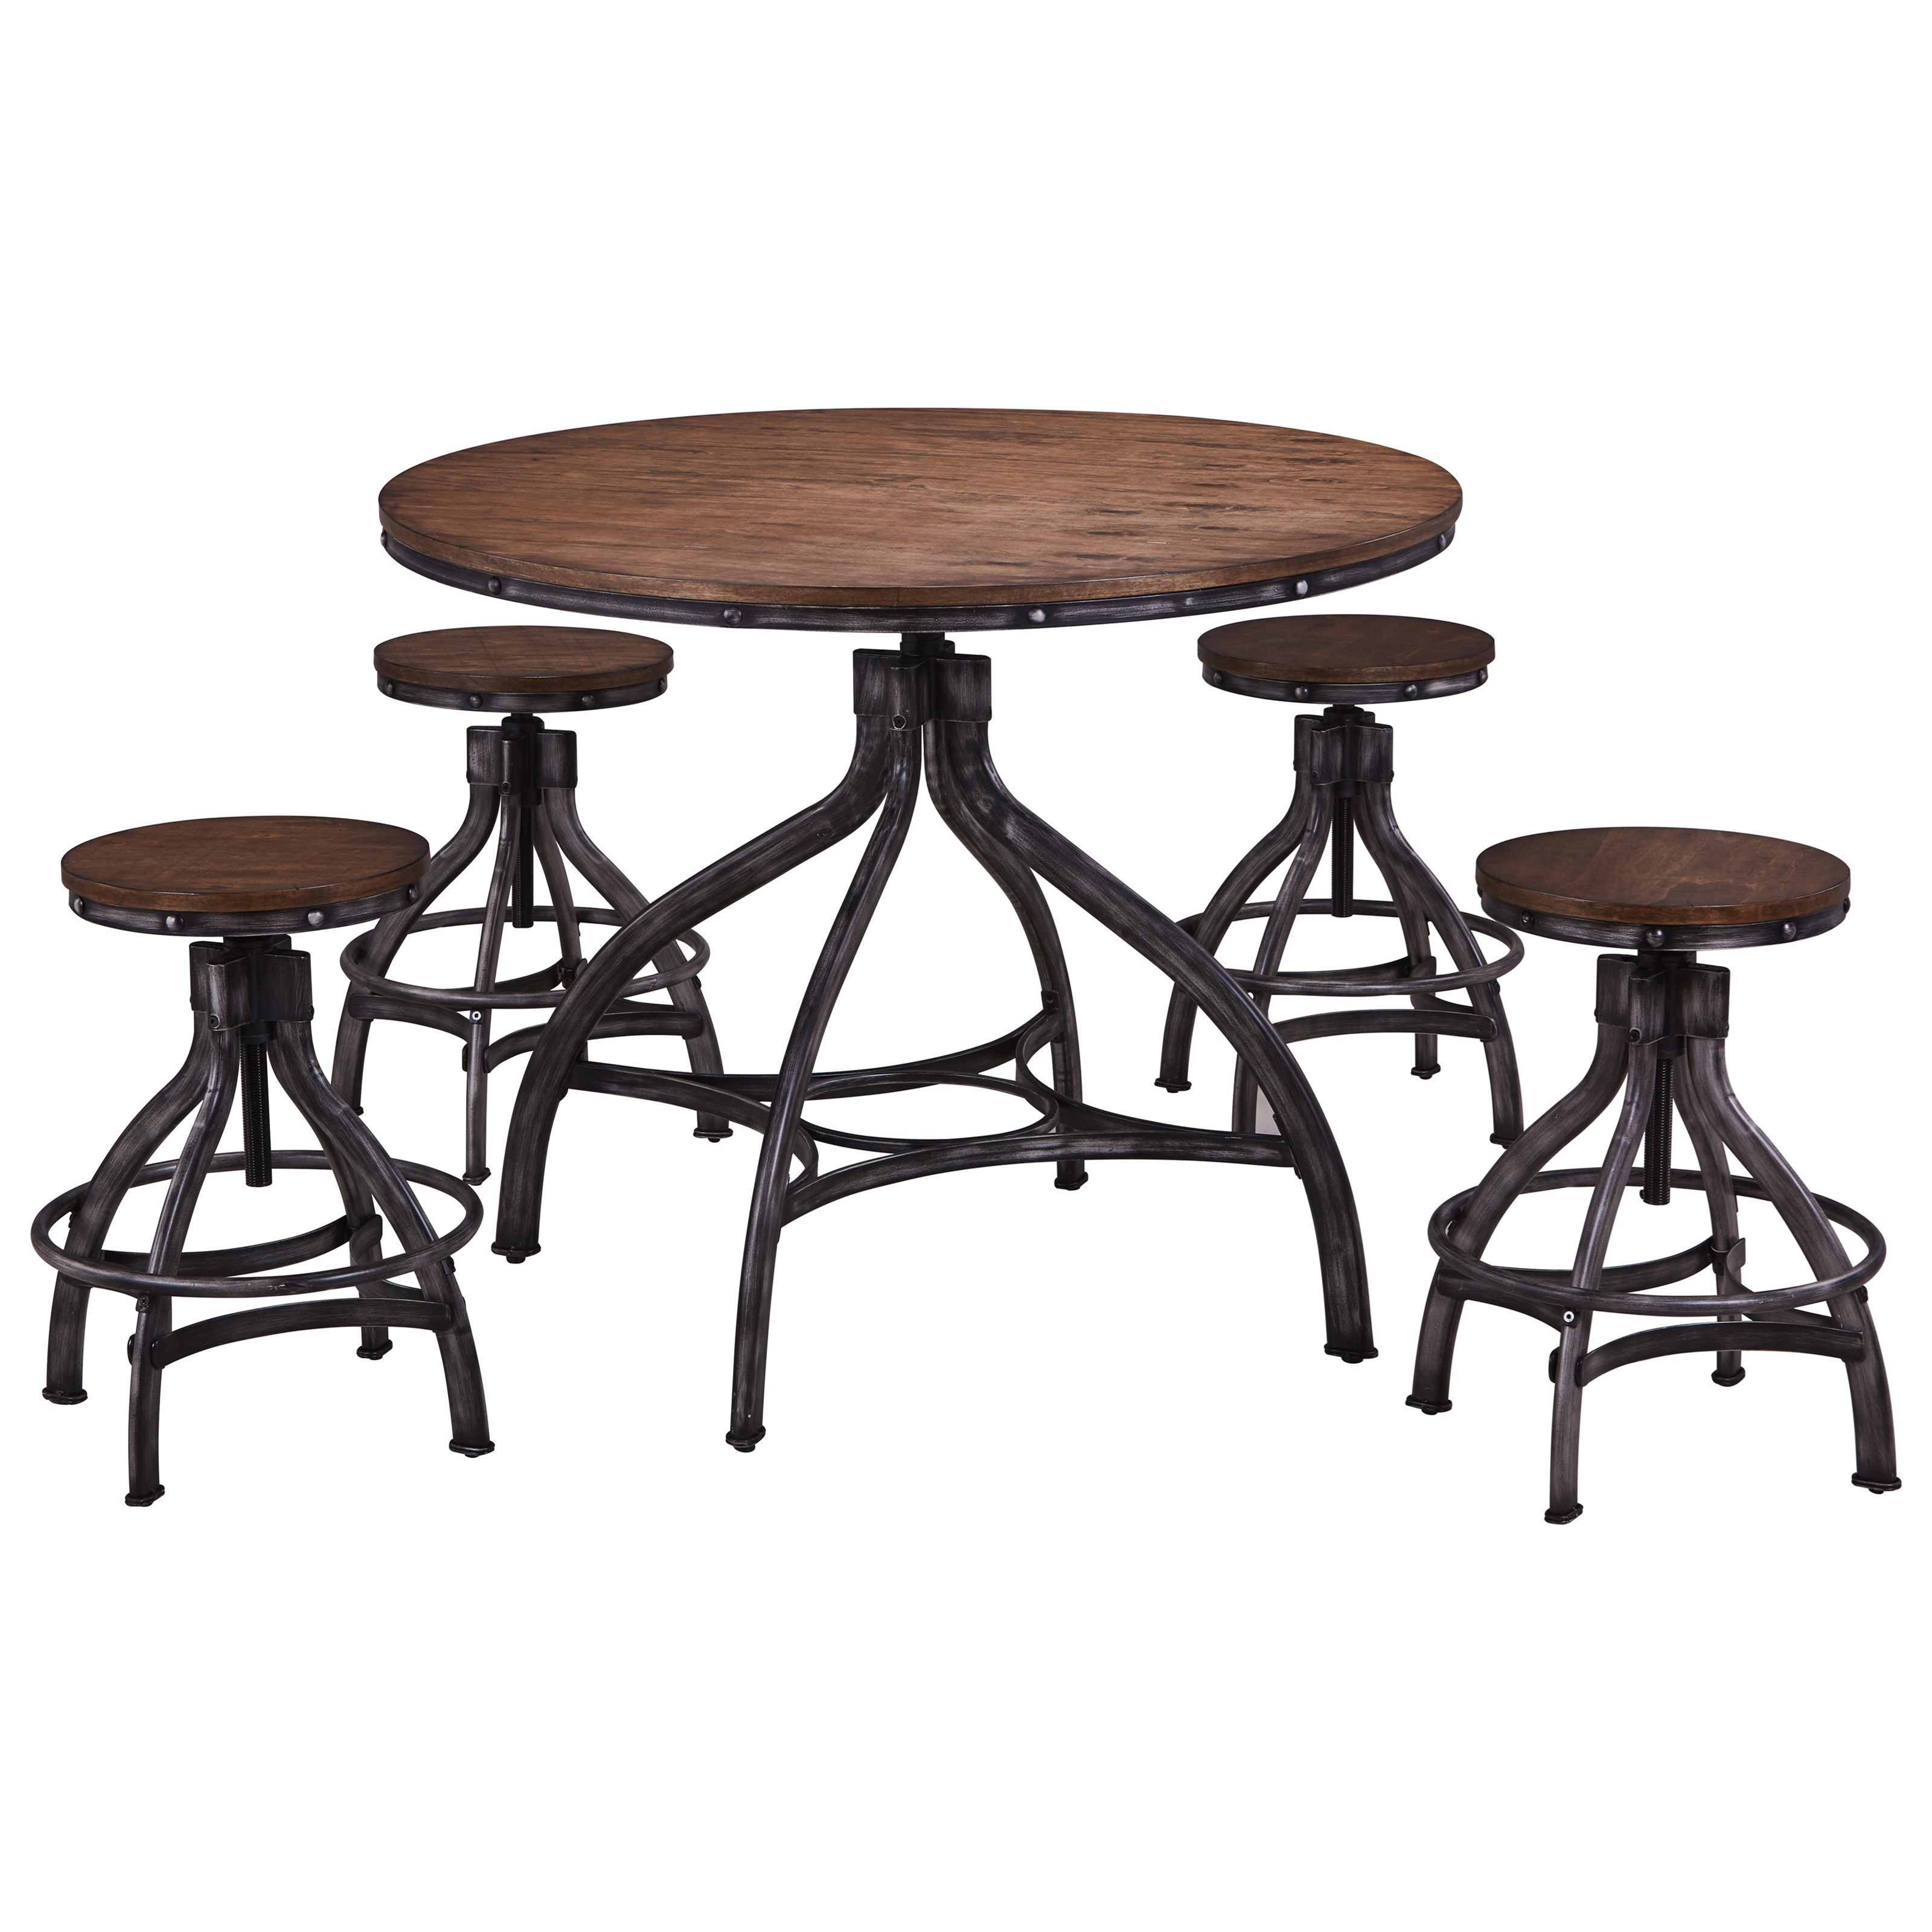 Simmons Chandler Contemporary Industrial 5 Piece Round Table And Stool Set